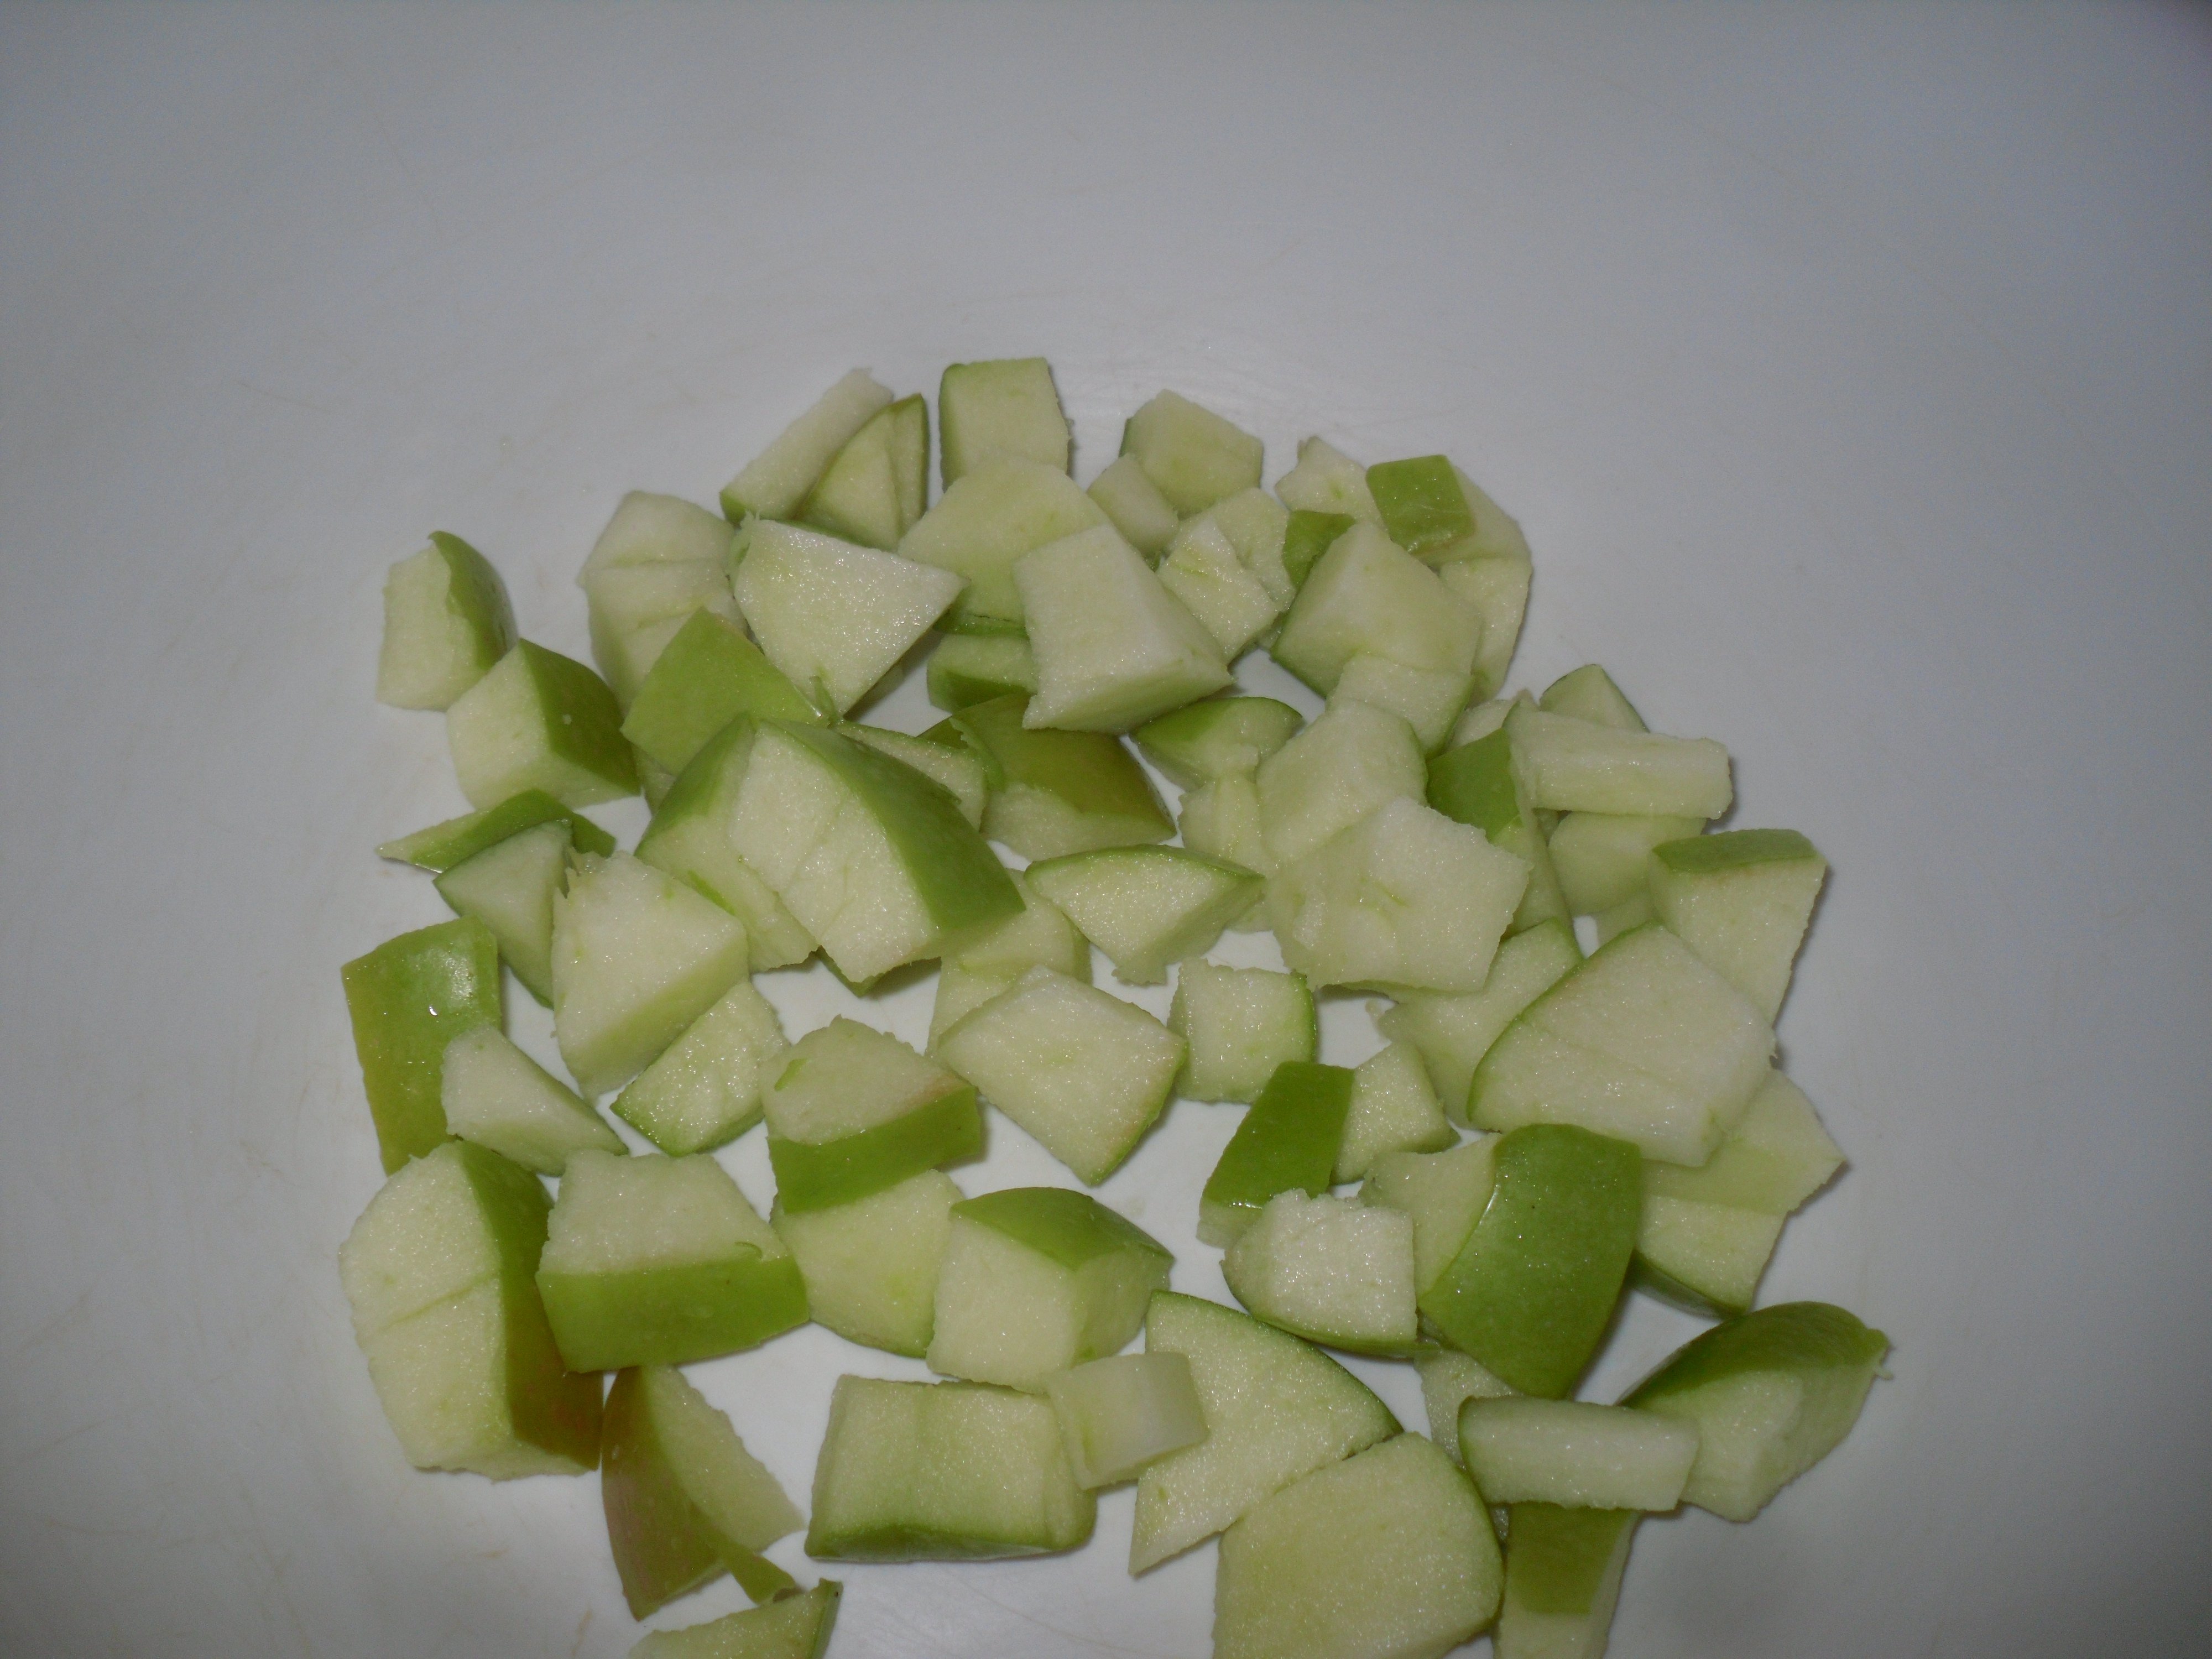 ...then I cut up a granny smith apple...